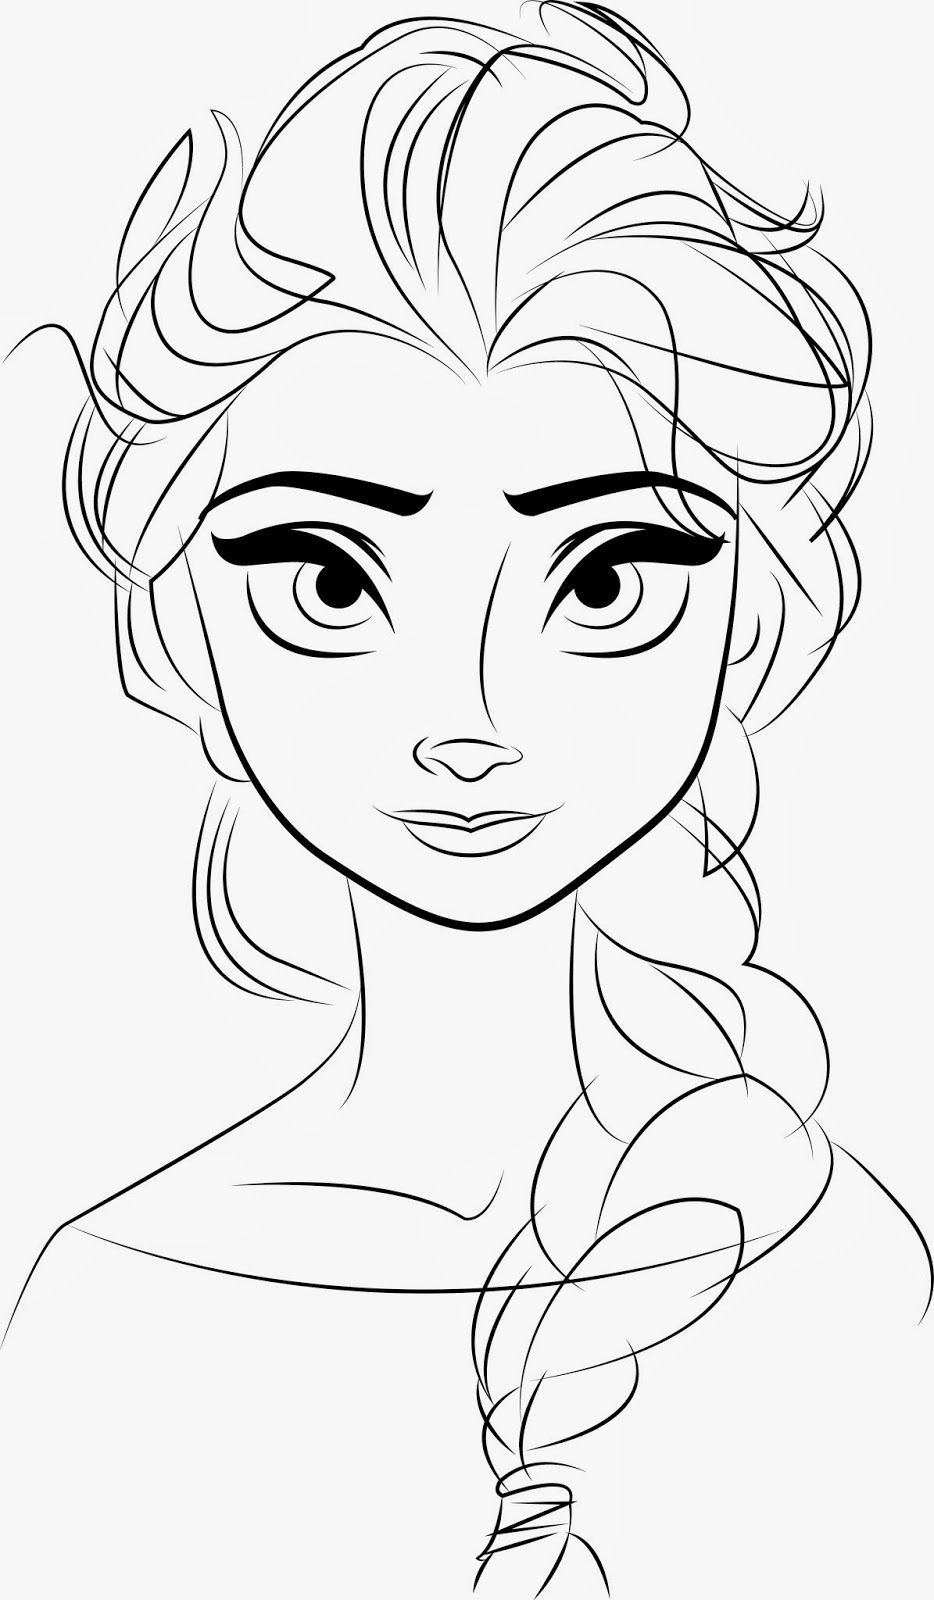 frozen drawing pictures how to draw elsa from frozen with easy step by step pictures frozen drawing